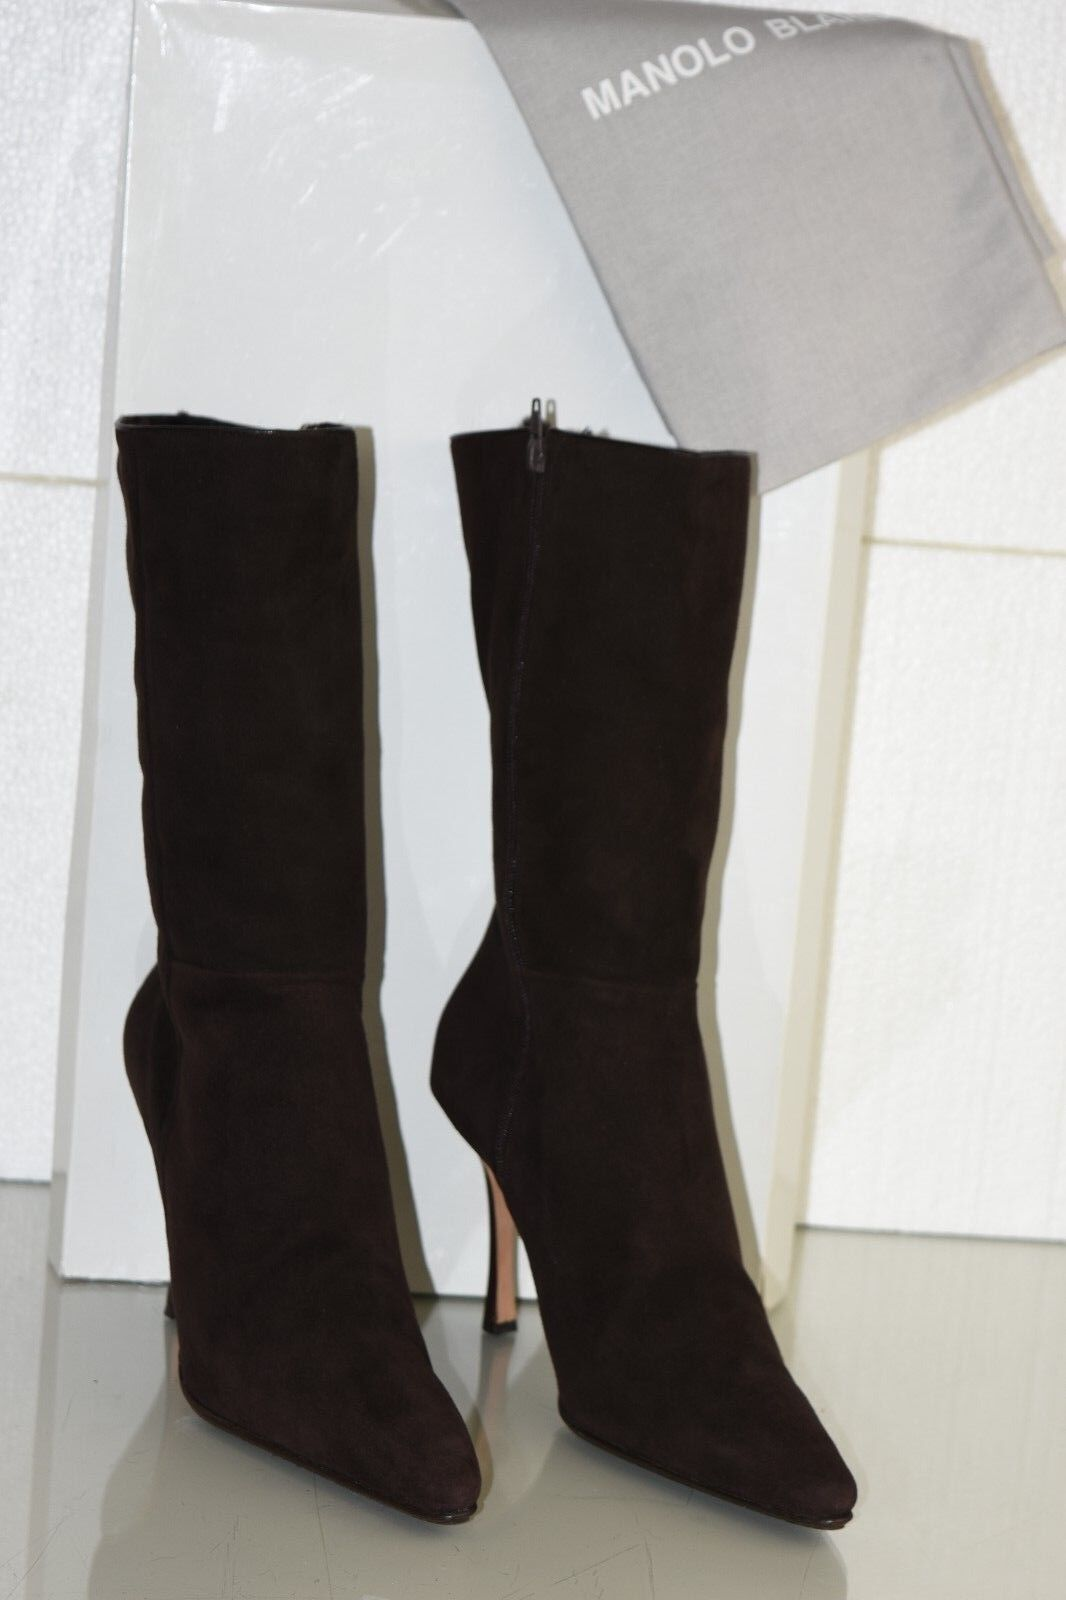 1595 NEW MANOLO BLAHNIK BROWN SUEDE Shearling FUR GATI BOOTS SHOES 39.5 9